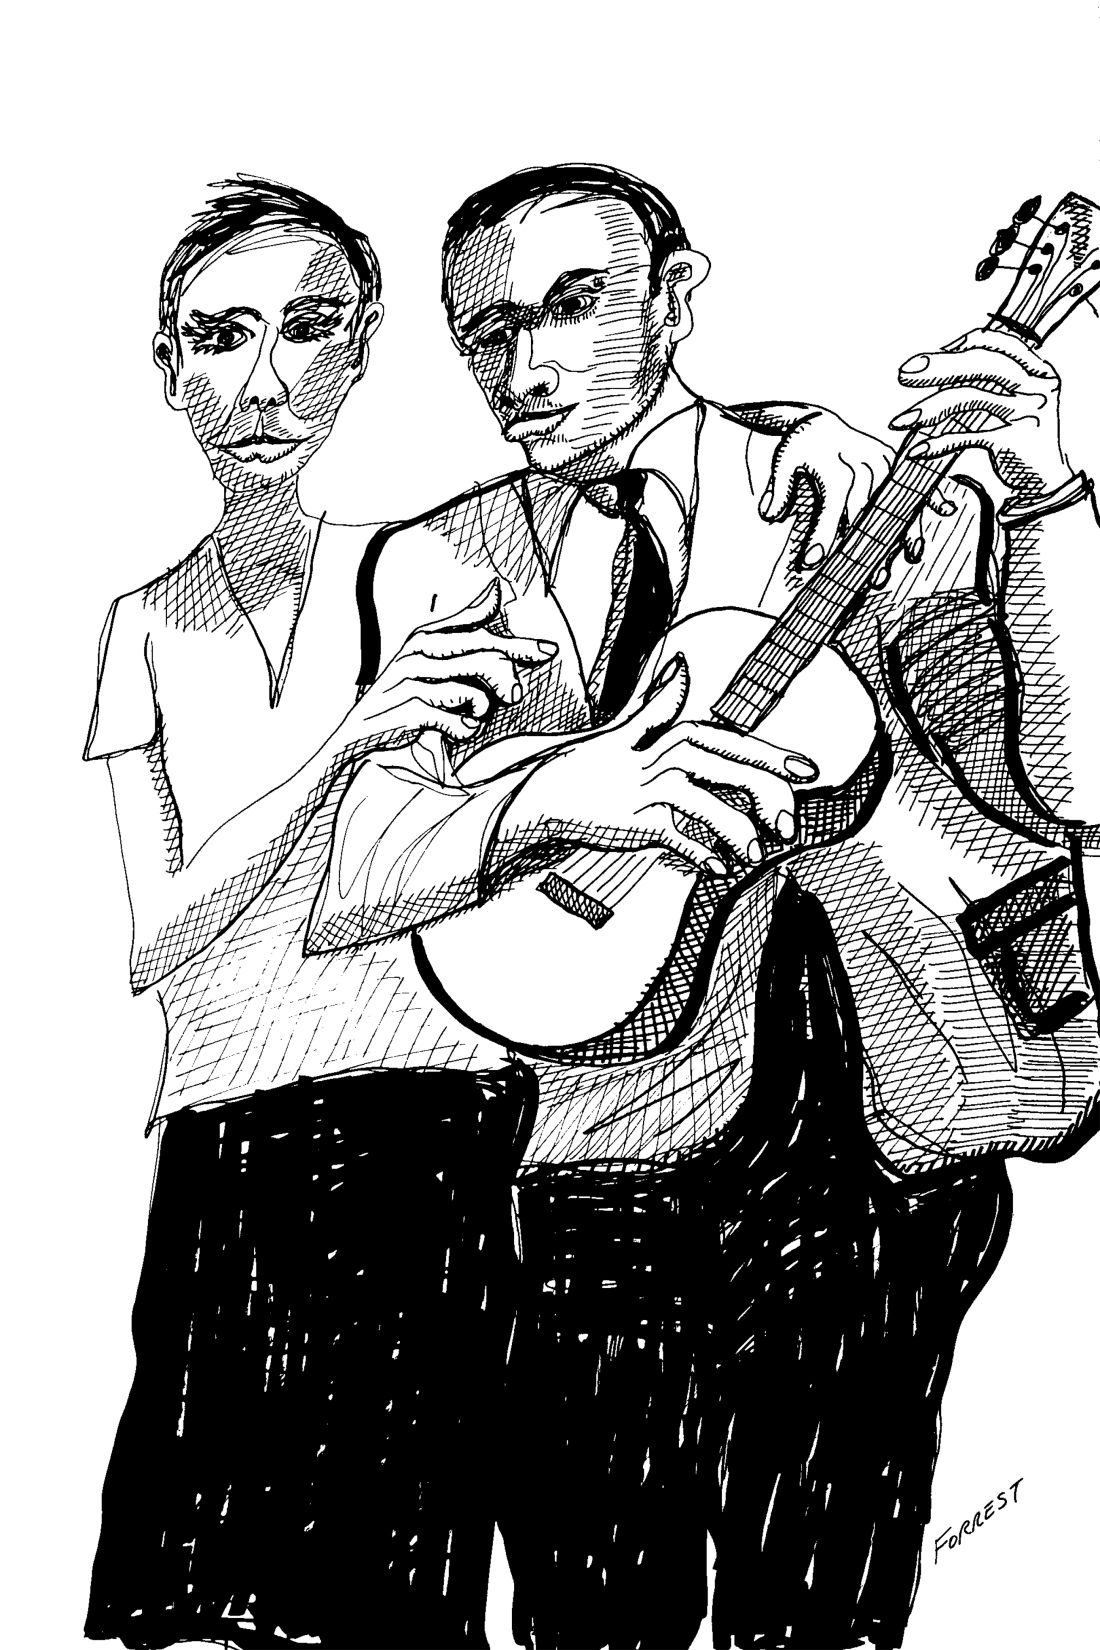 Allen_Forrest-forrest_blues_folks_9_ink_2015